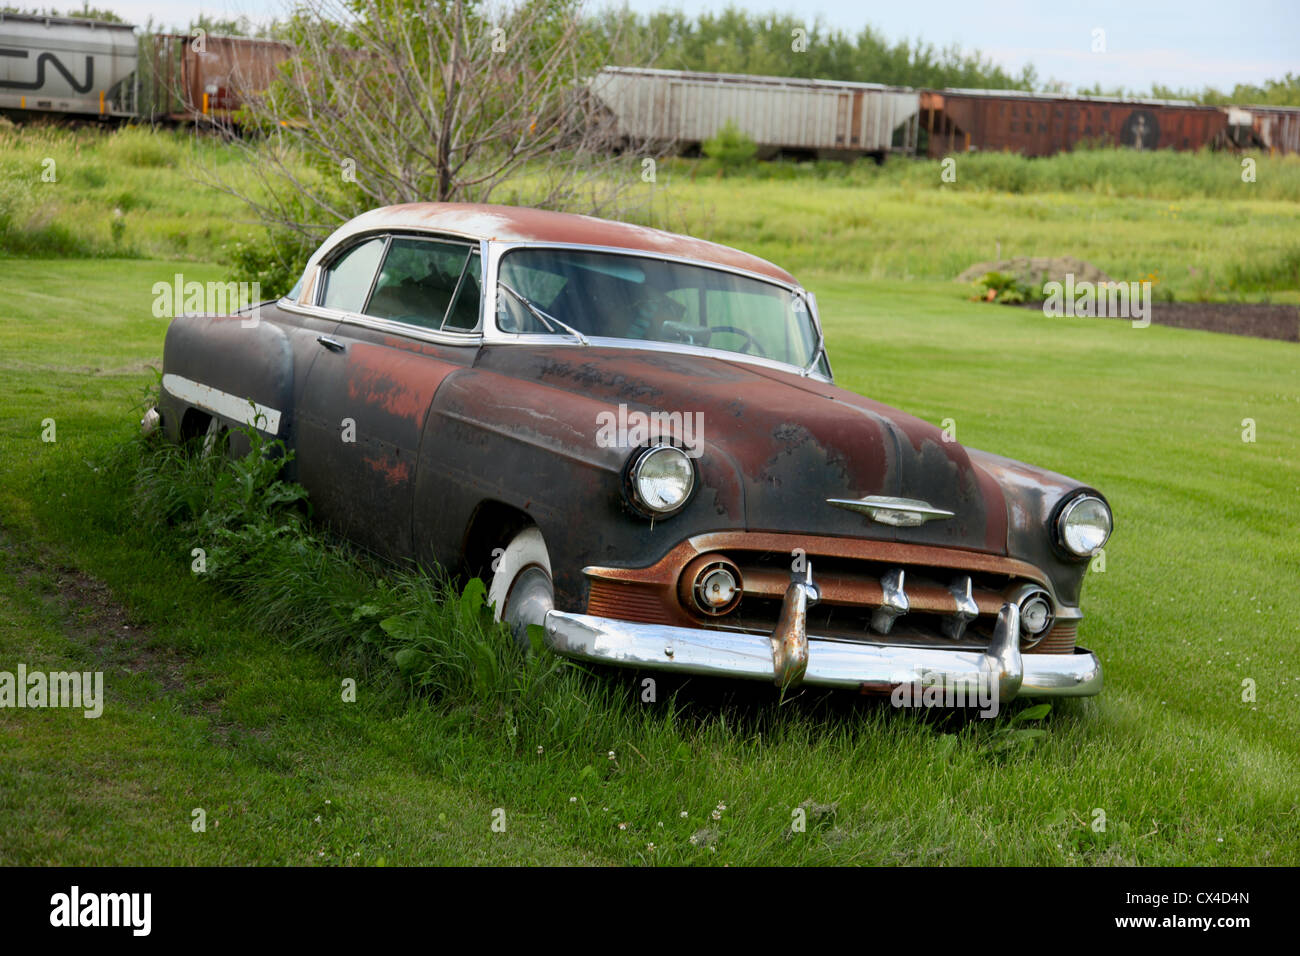 Old Chevy Stock Photos & Old Chevy Stock Images - Alamy